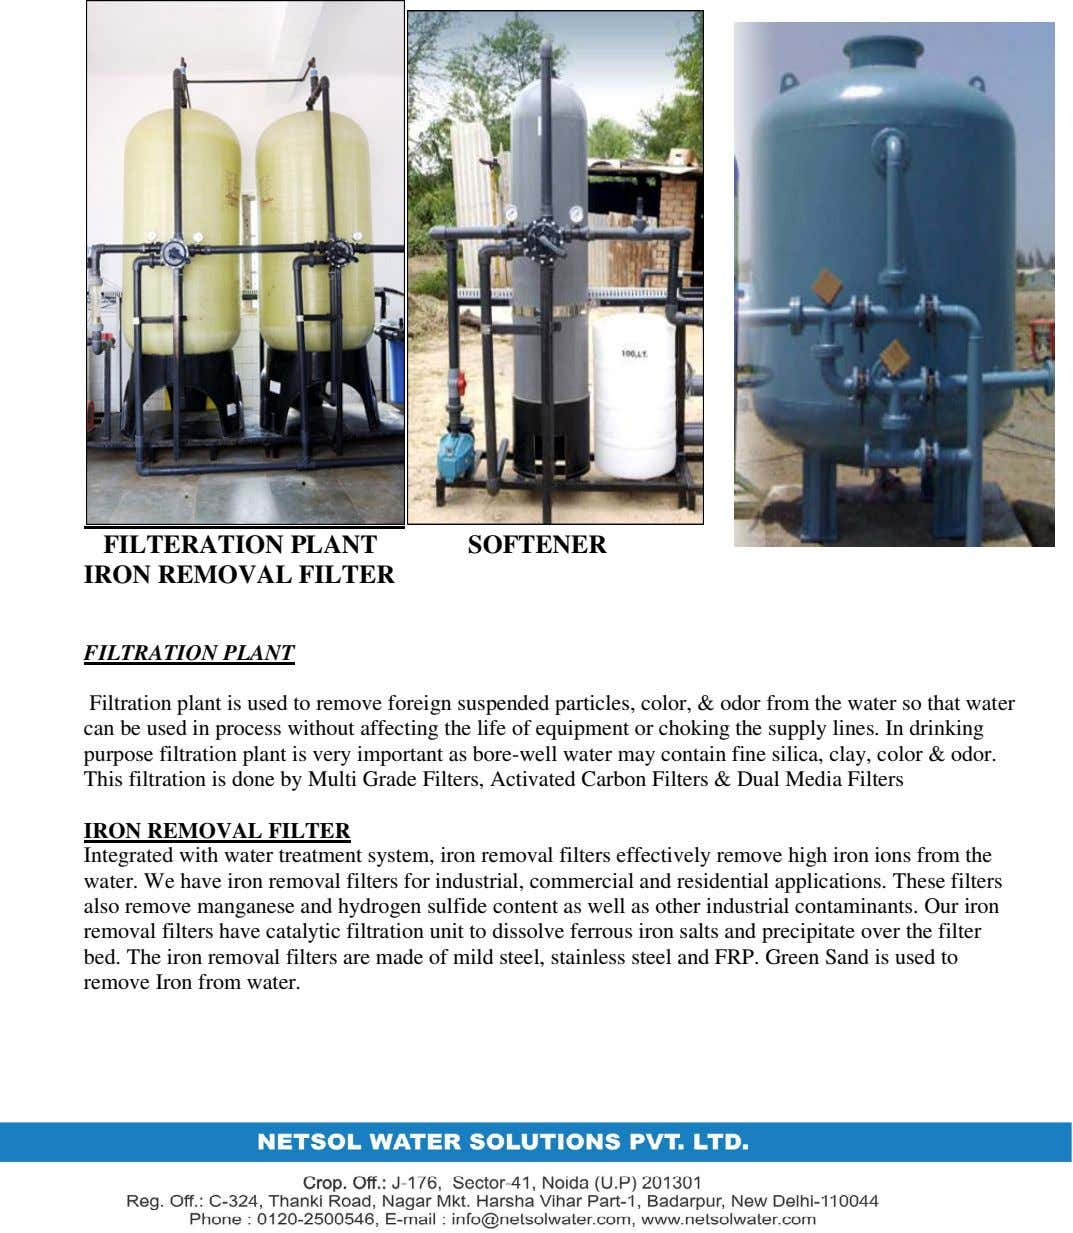 FILTERATION PLANT IRON REMOVAL FILTER SOFTENER FILTRATION PLANT Filtration plant is used to remove foreign